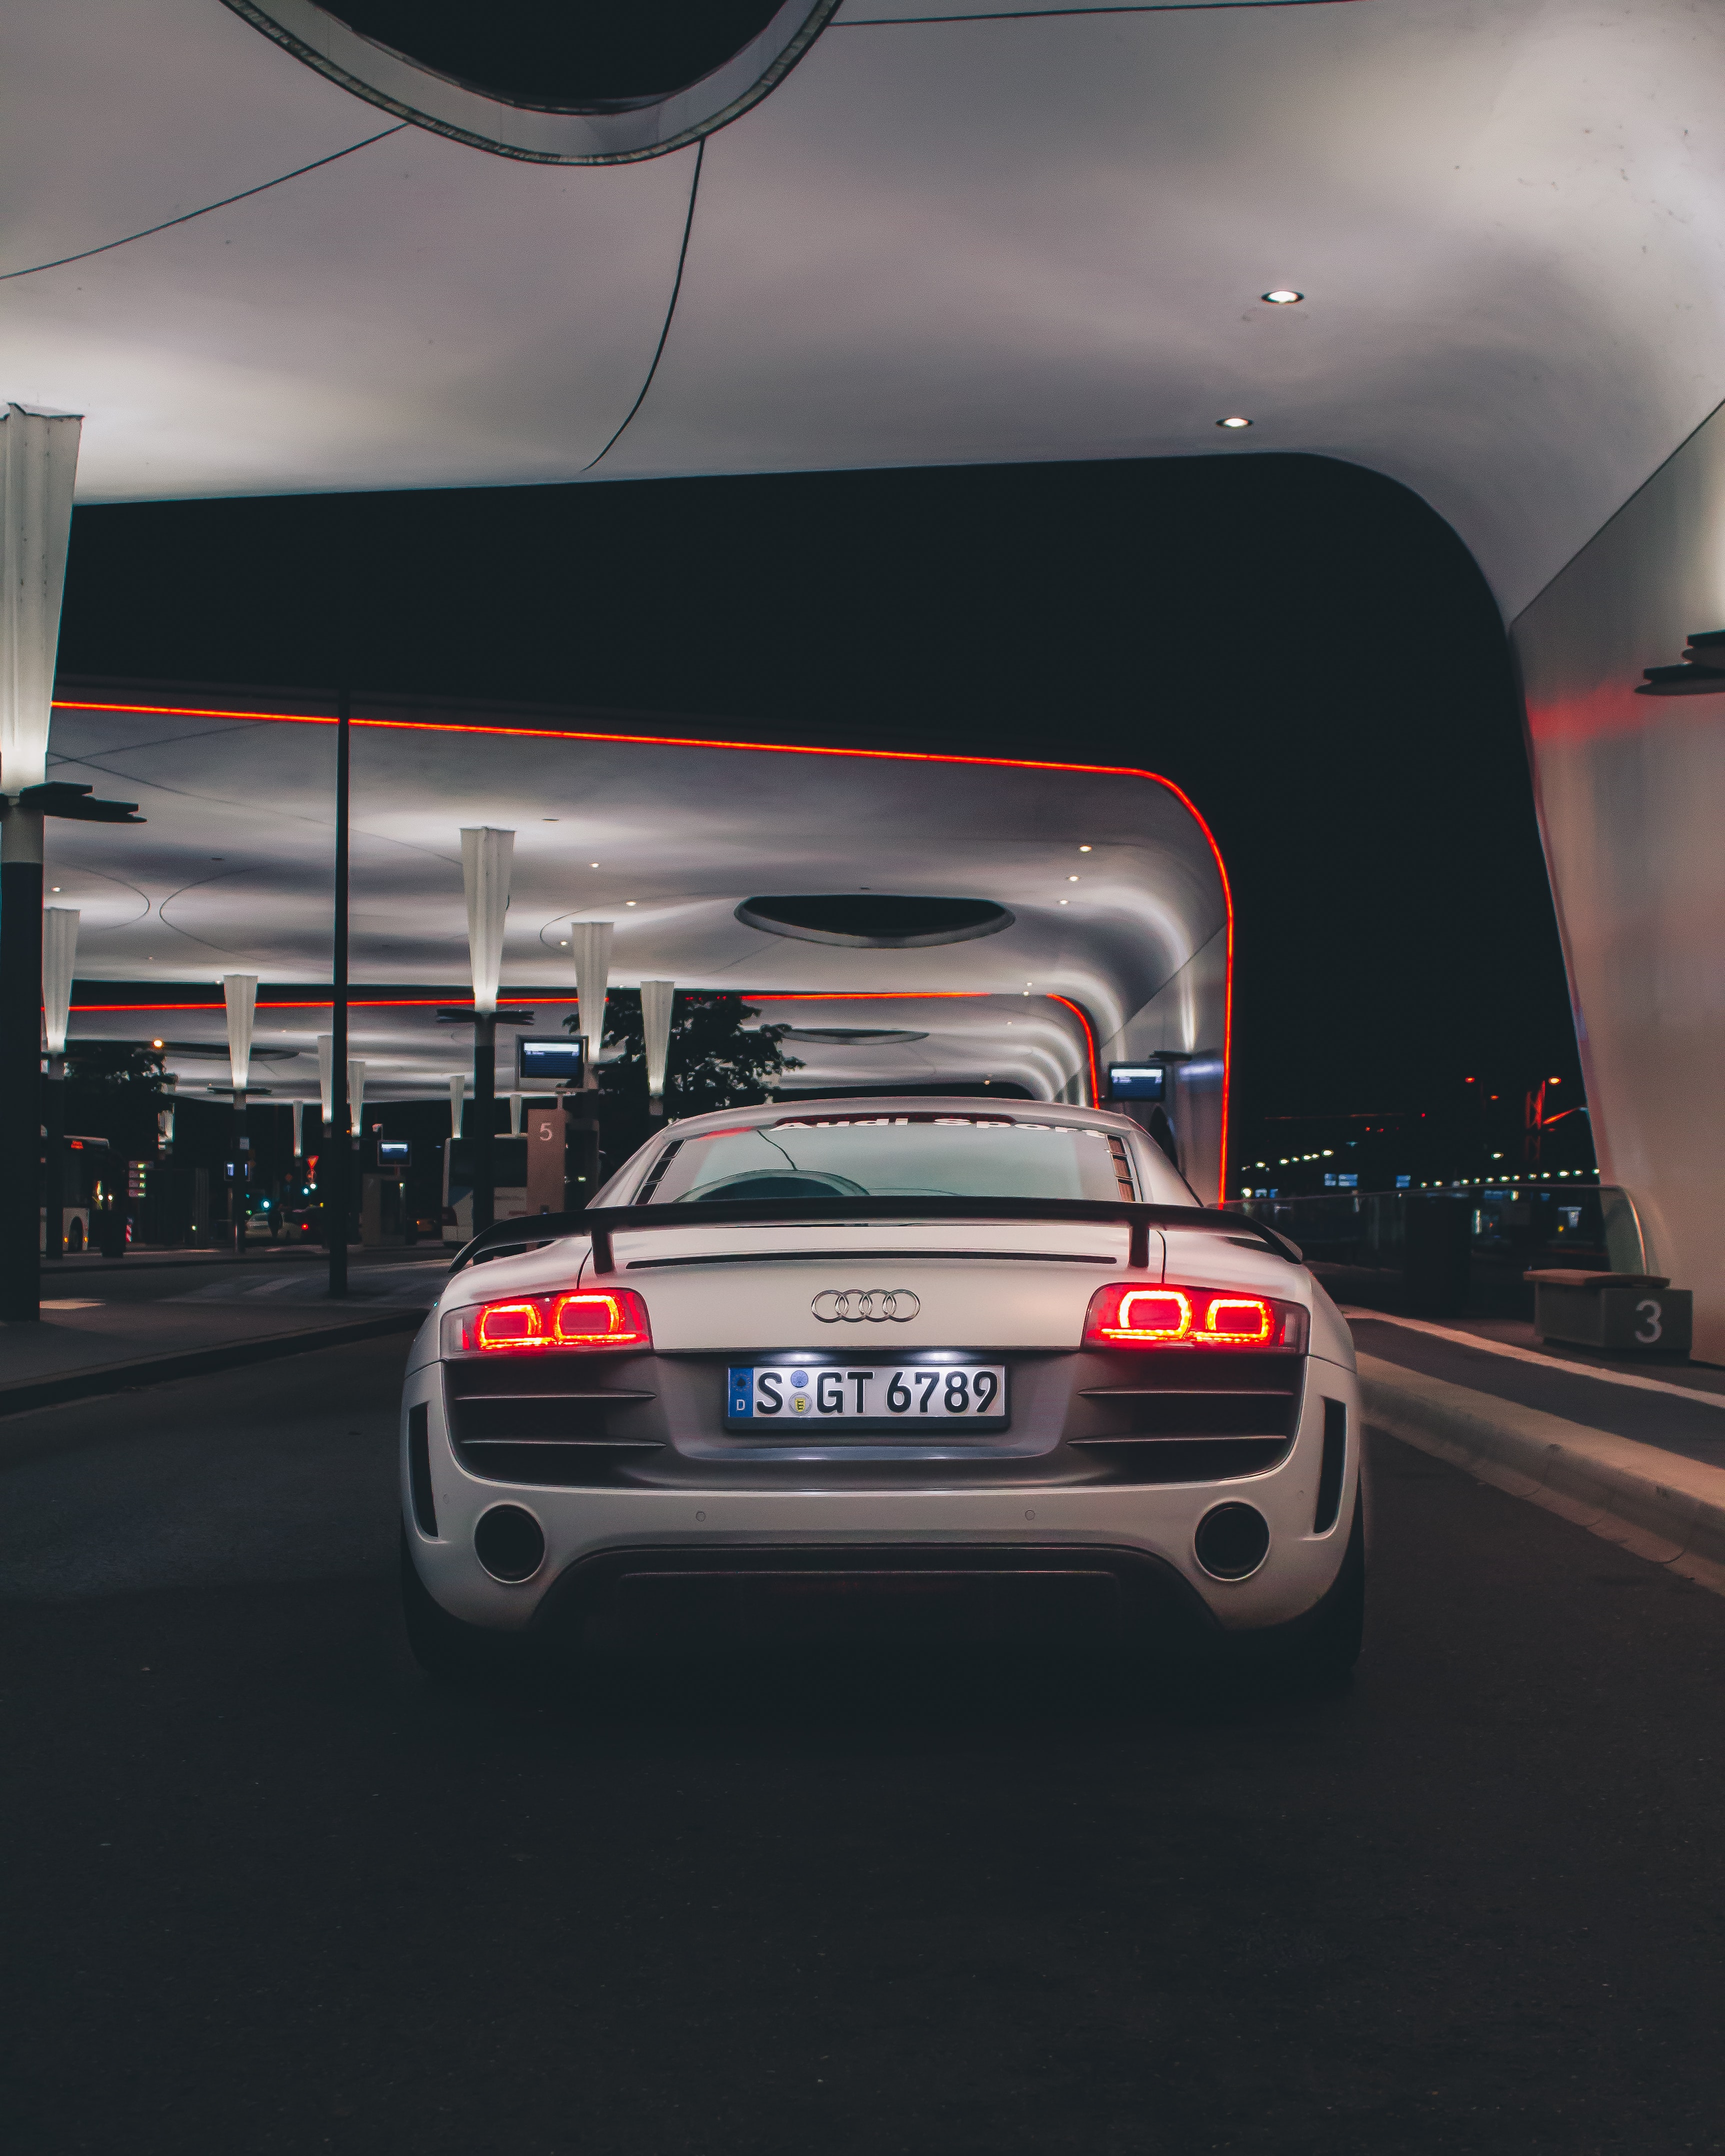 141937 download wallpaper Sports, Audi, Cars, Lights, Car, Sports Car, Back View, Rear View, Headlights screensavers and pictures for free